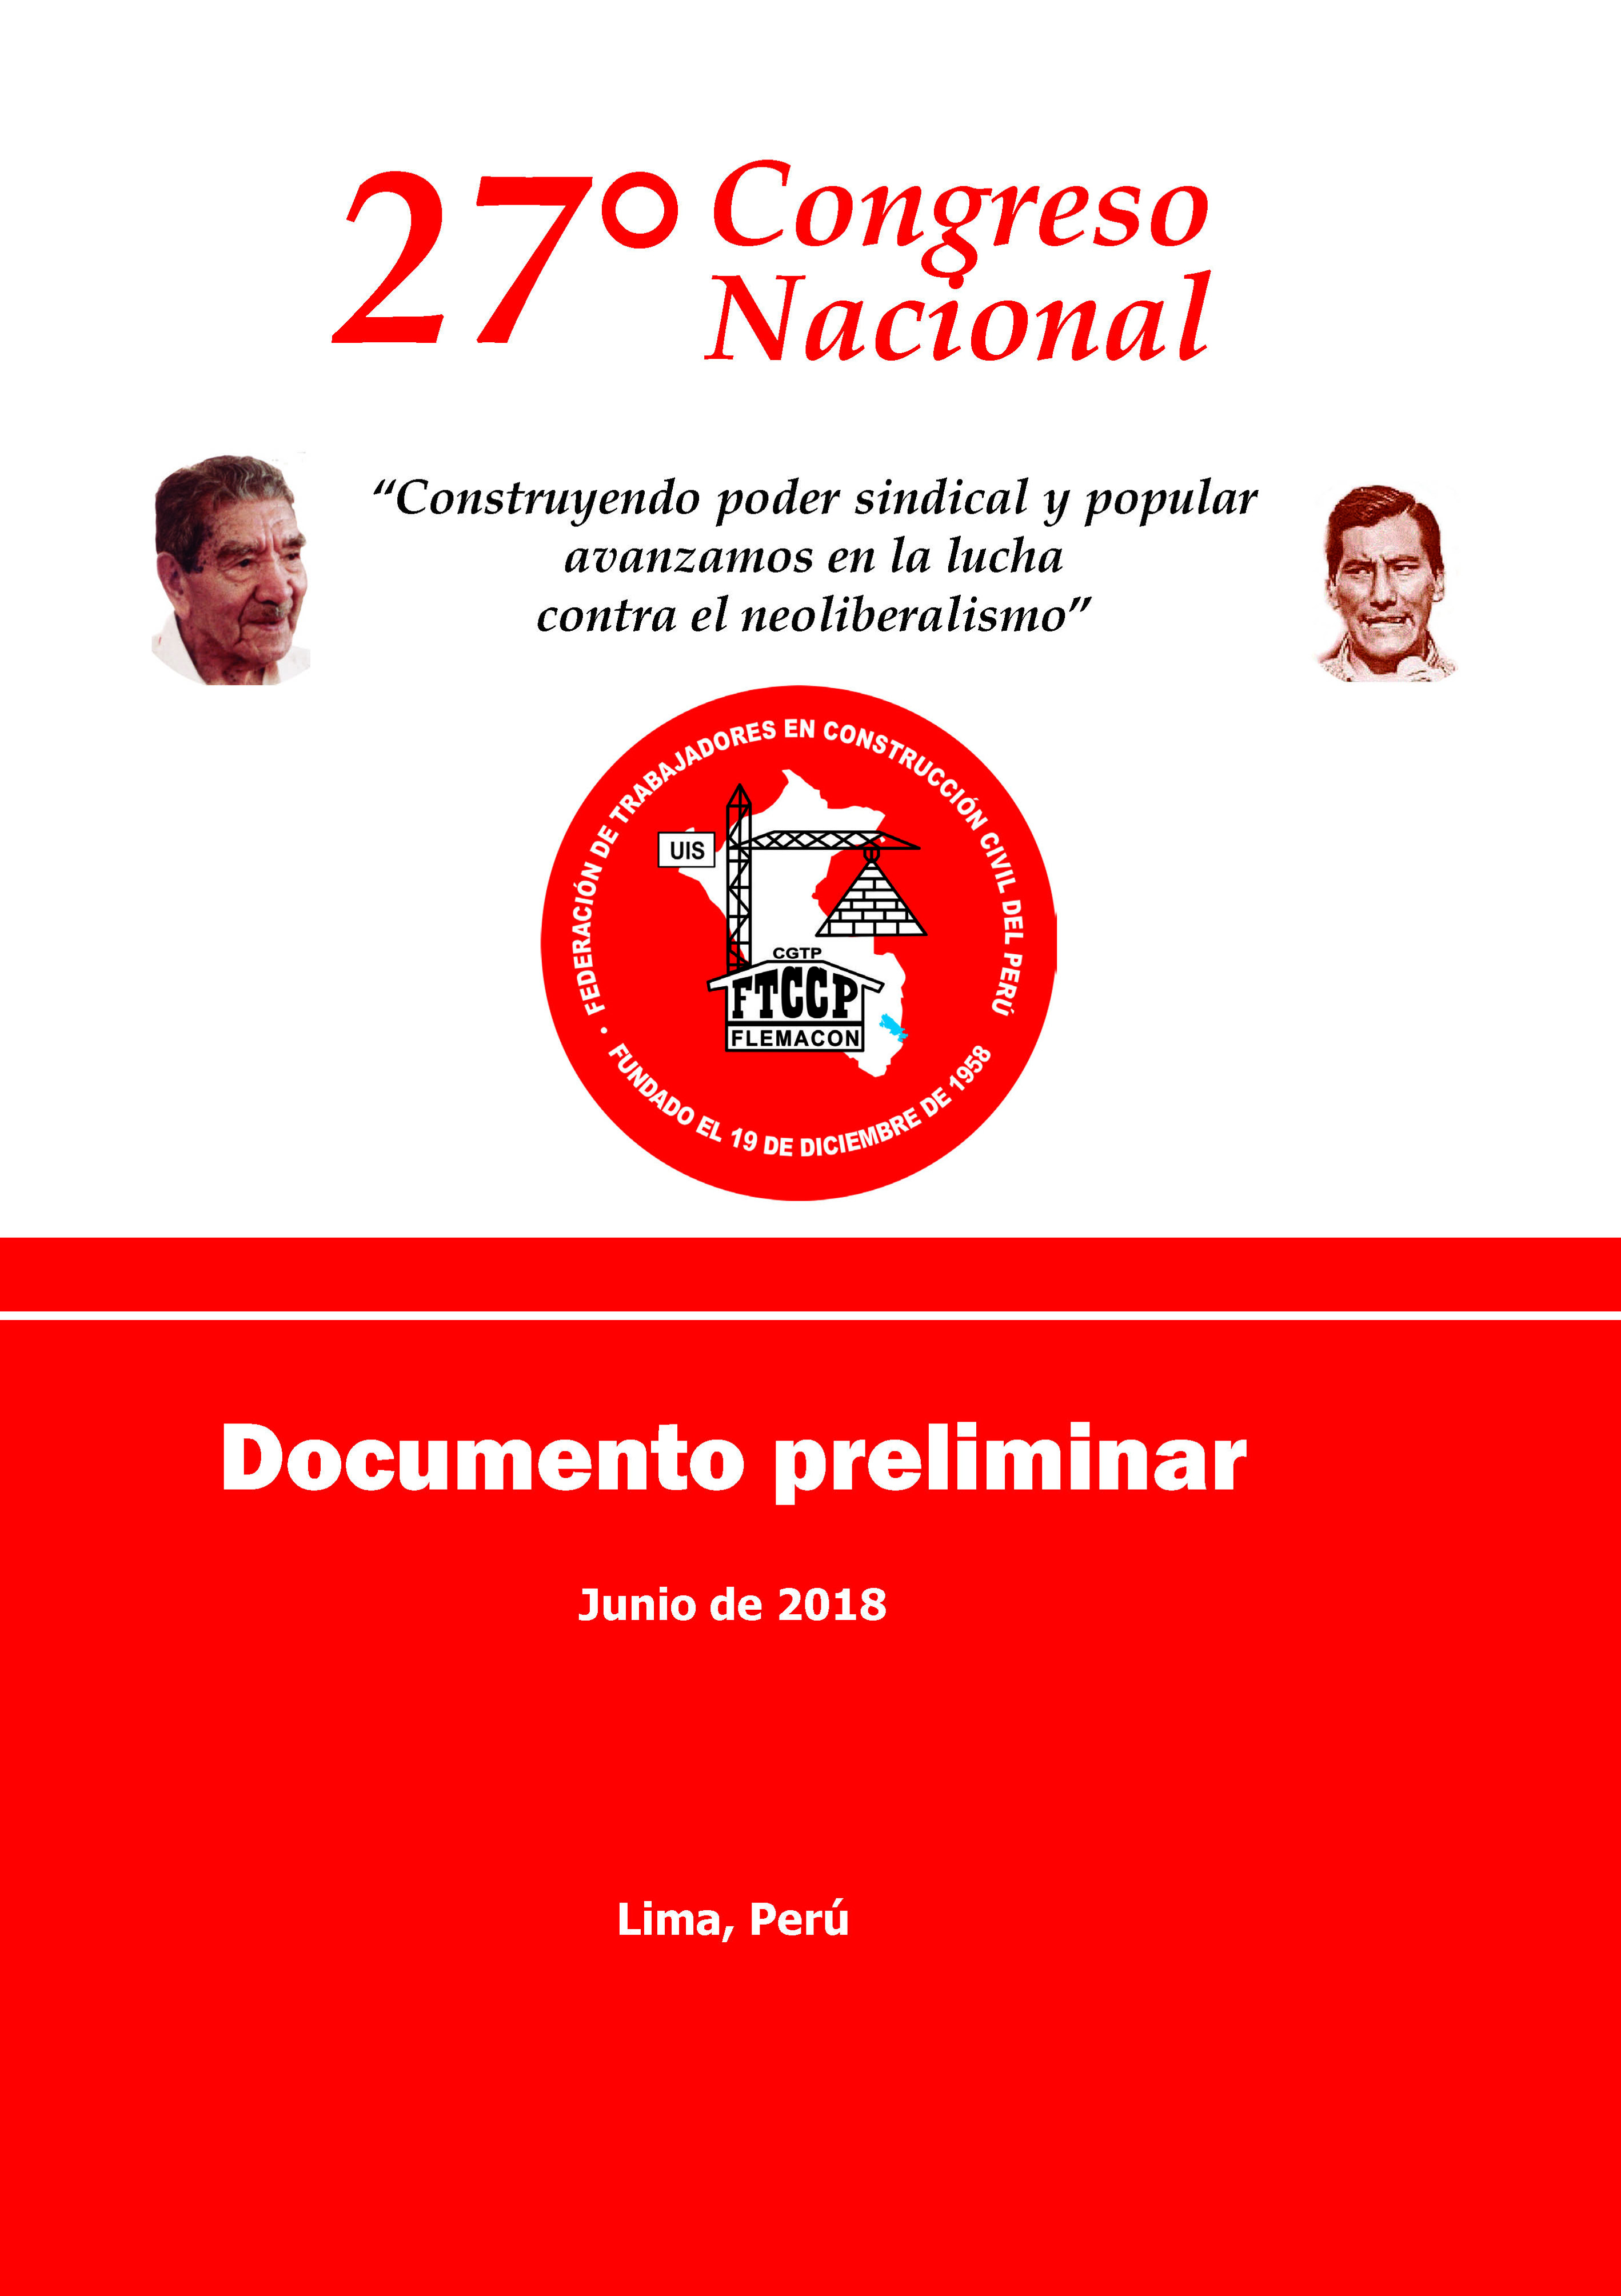 27 Congreso Nacional Ordinario - Documentos